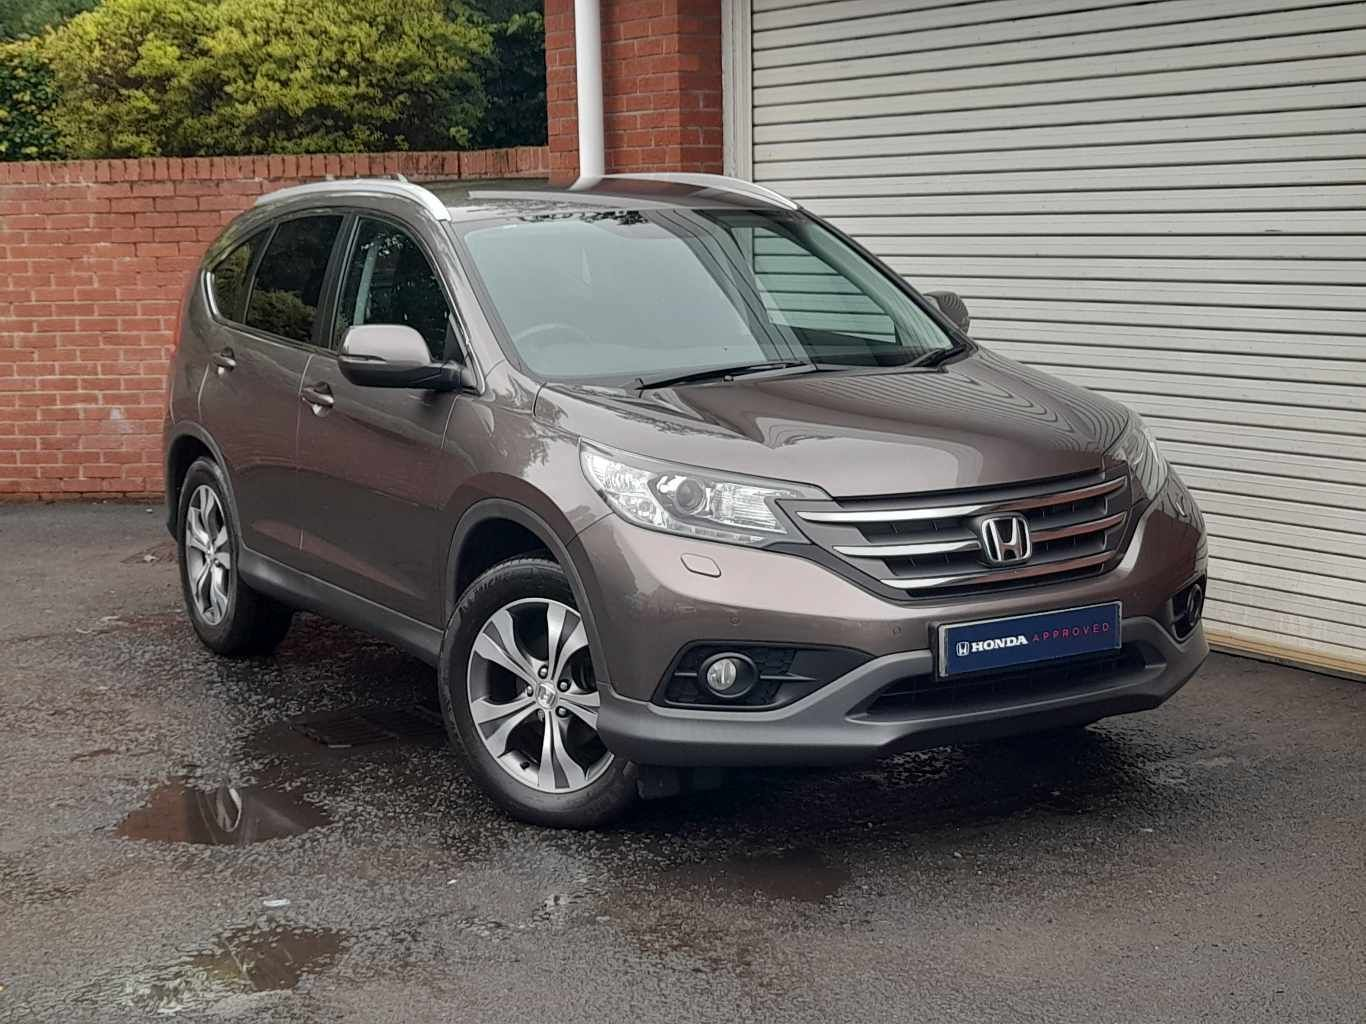 Honda CR-V 2.0I SR Manual